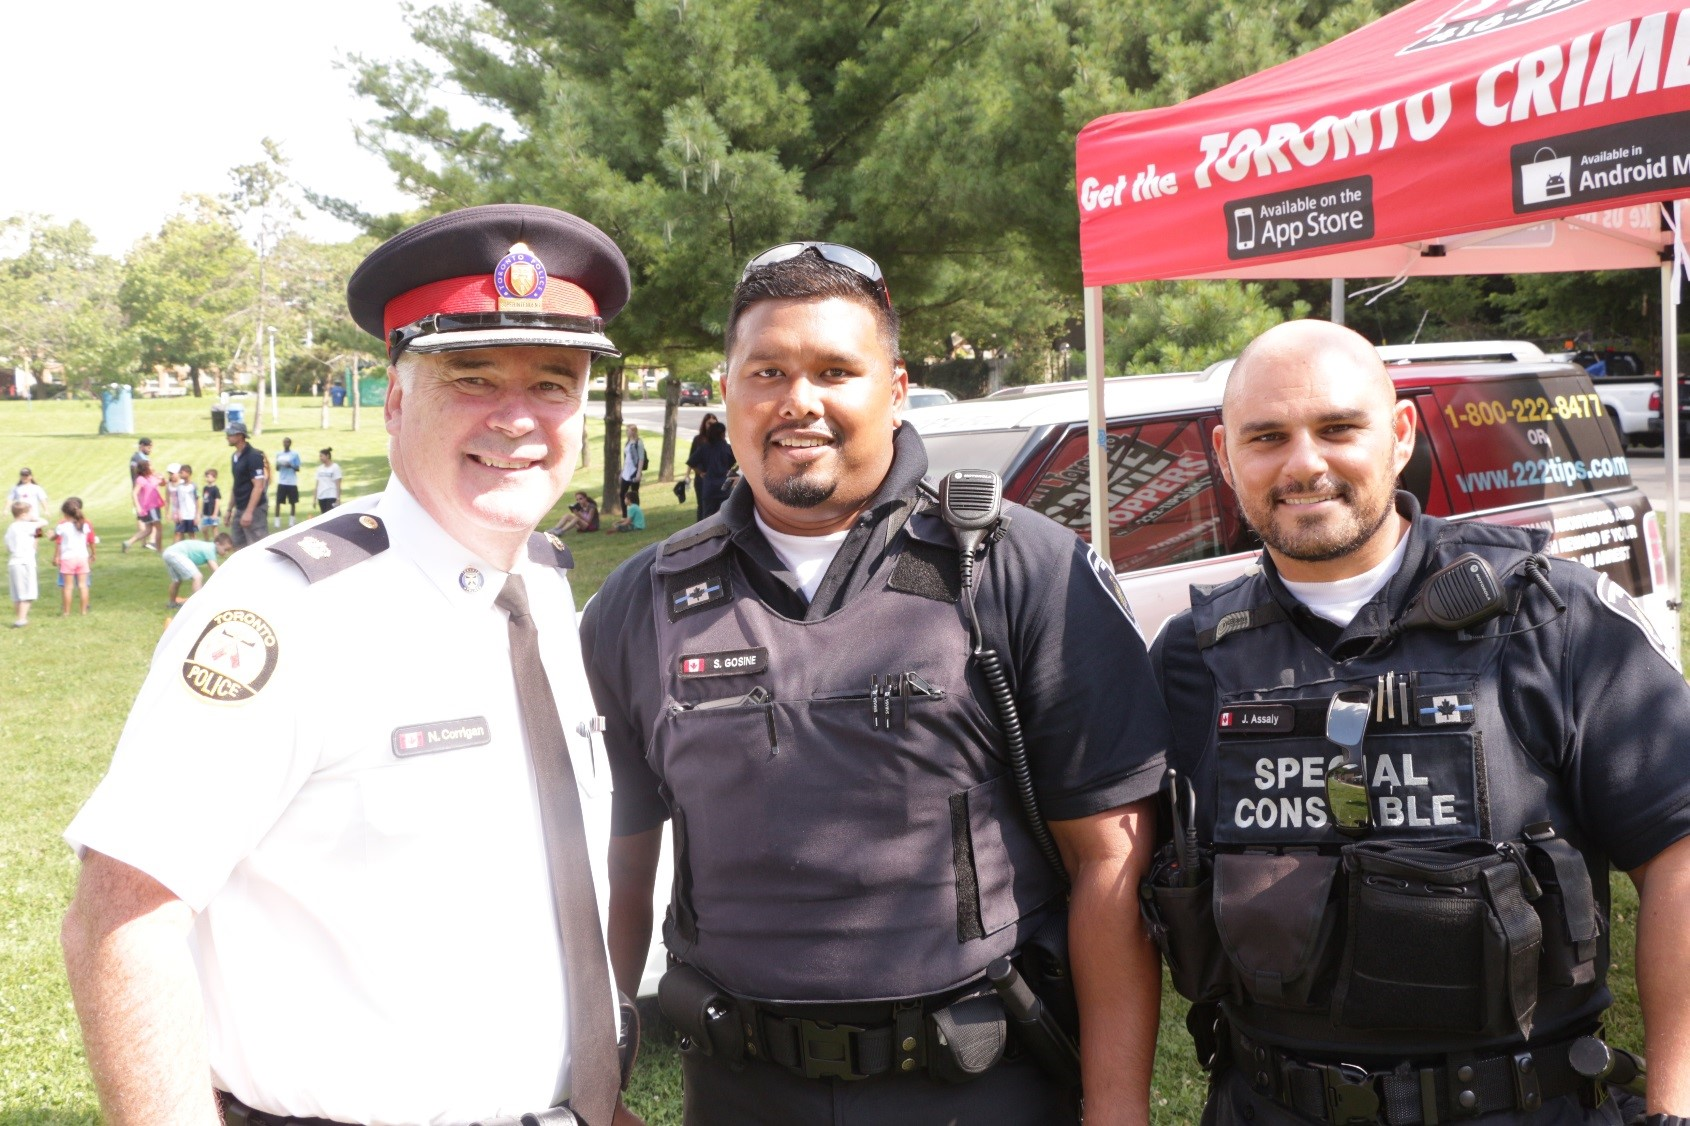 TPS Superintendent with Special Constables